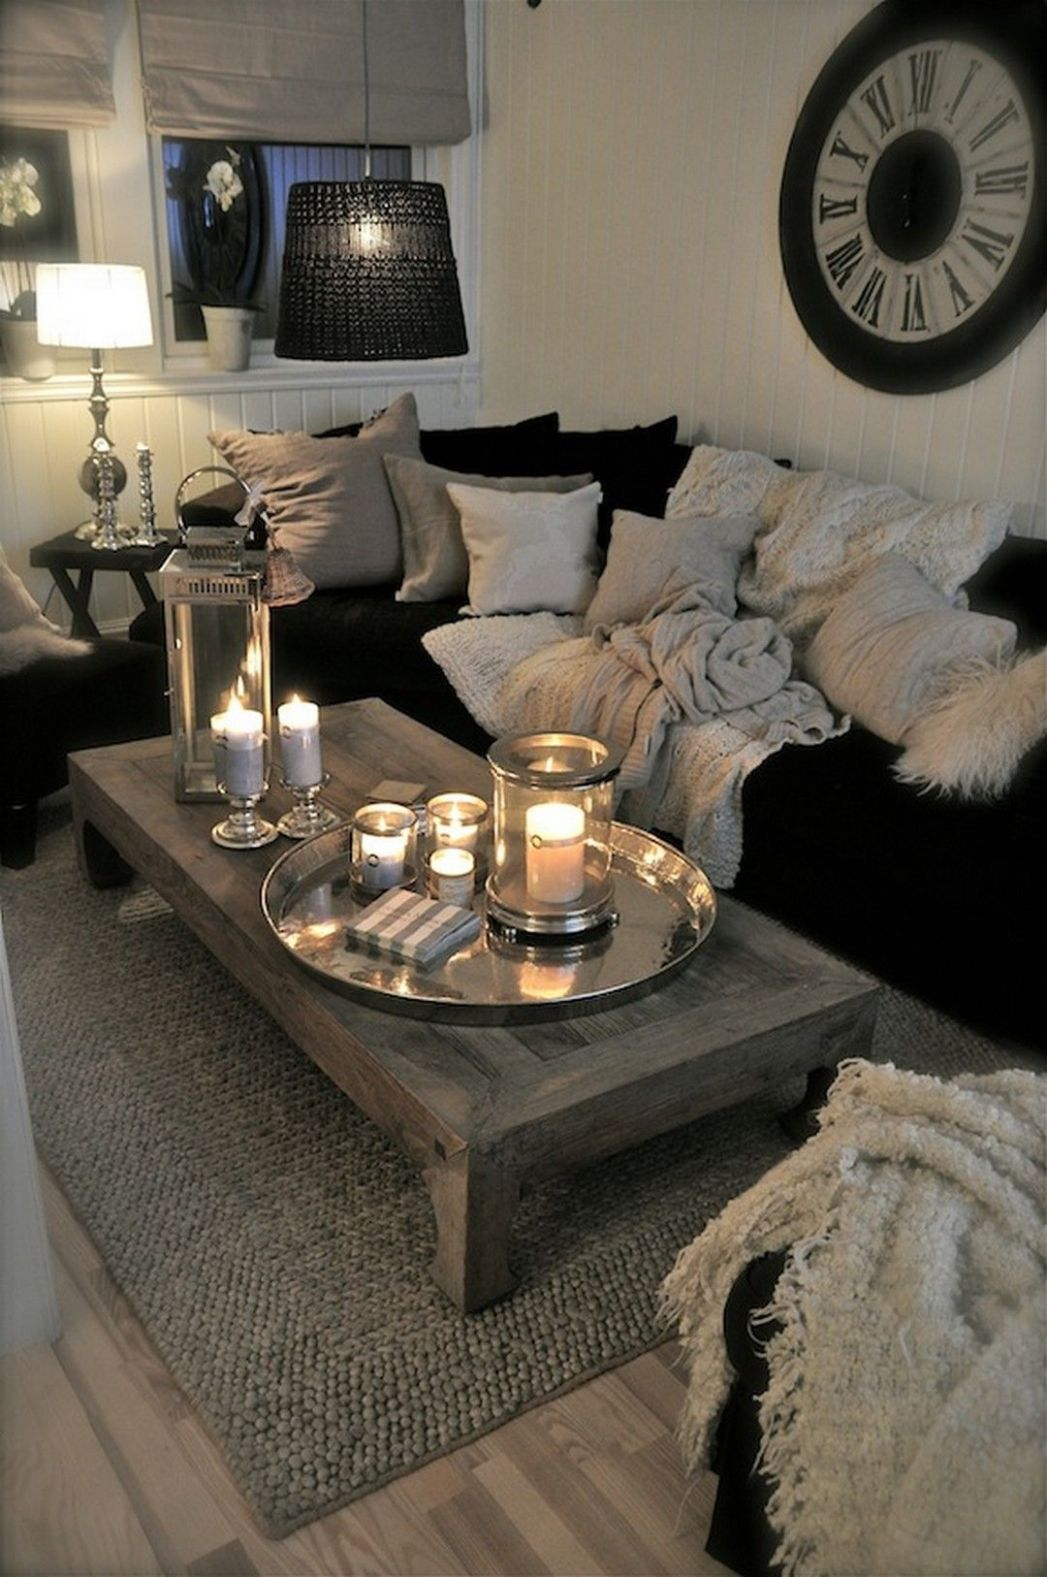 8 Easy DIY First Apartement Decorating Ideas   First apartment ..